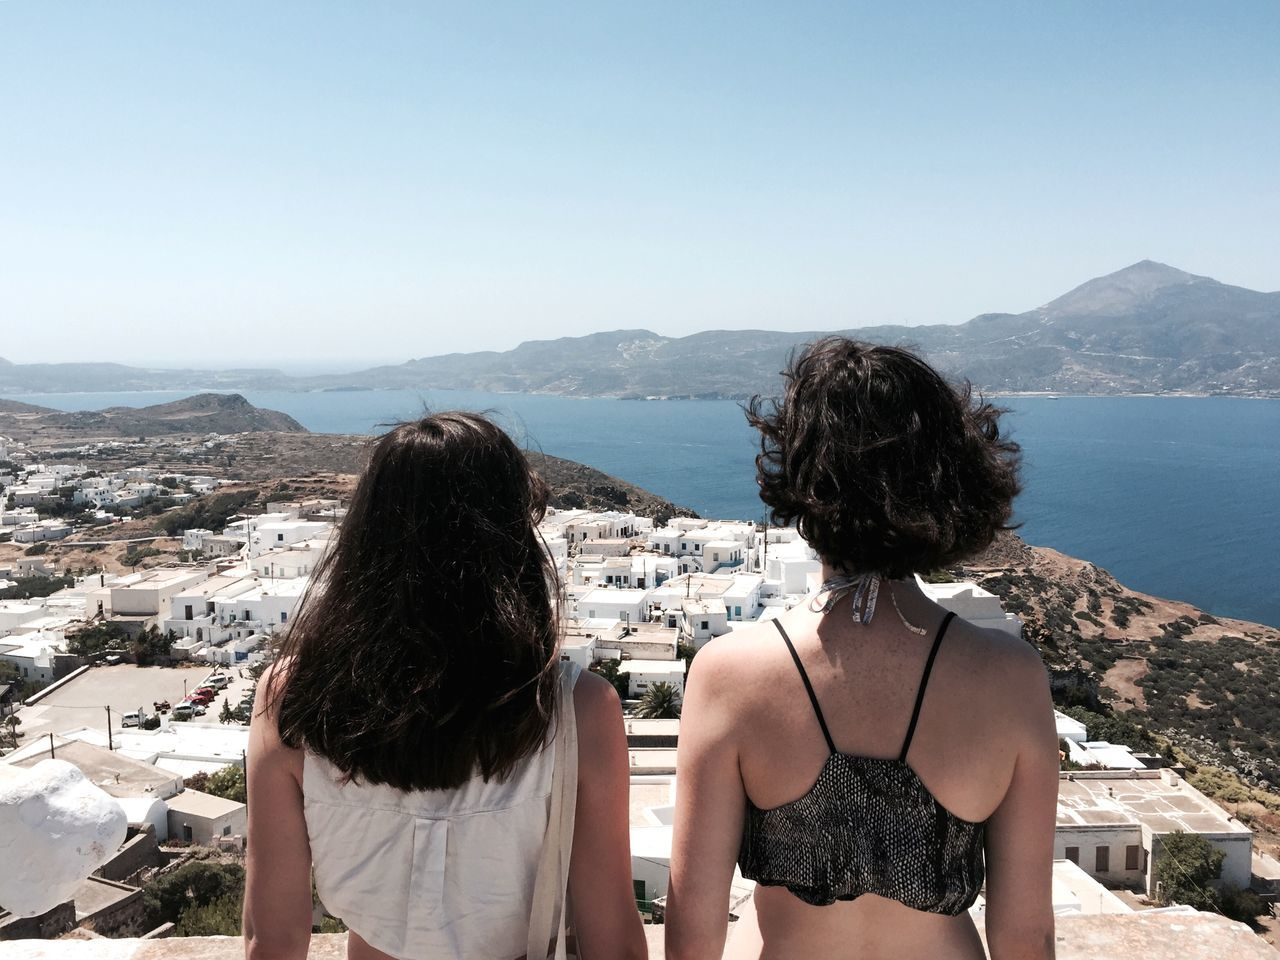 Rear view of women looking at river and mountains against clear sky